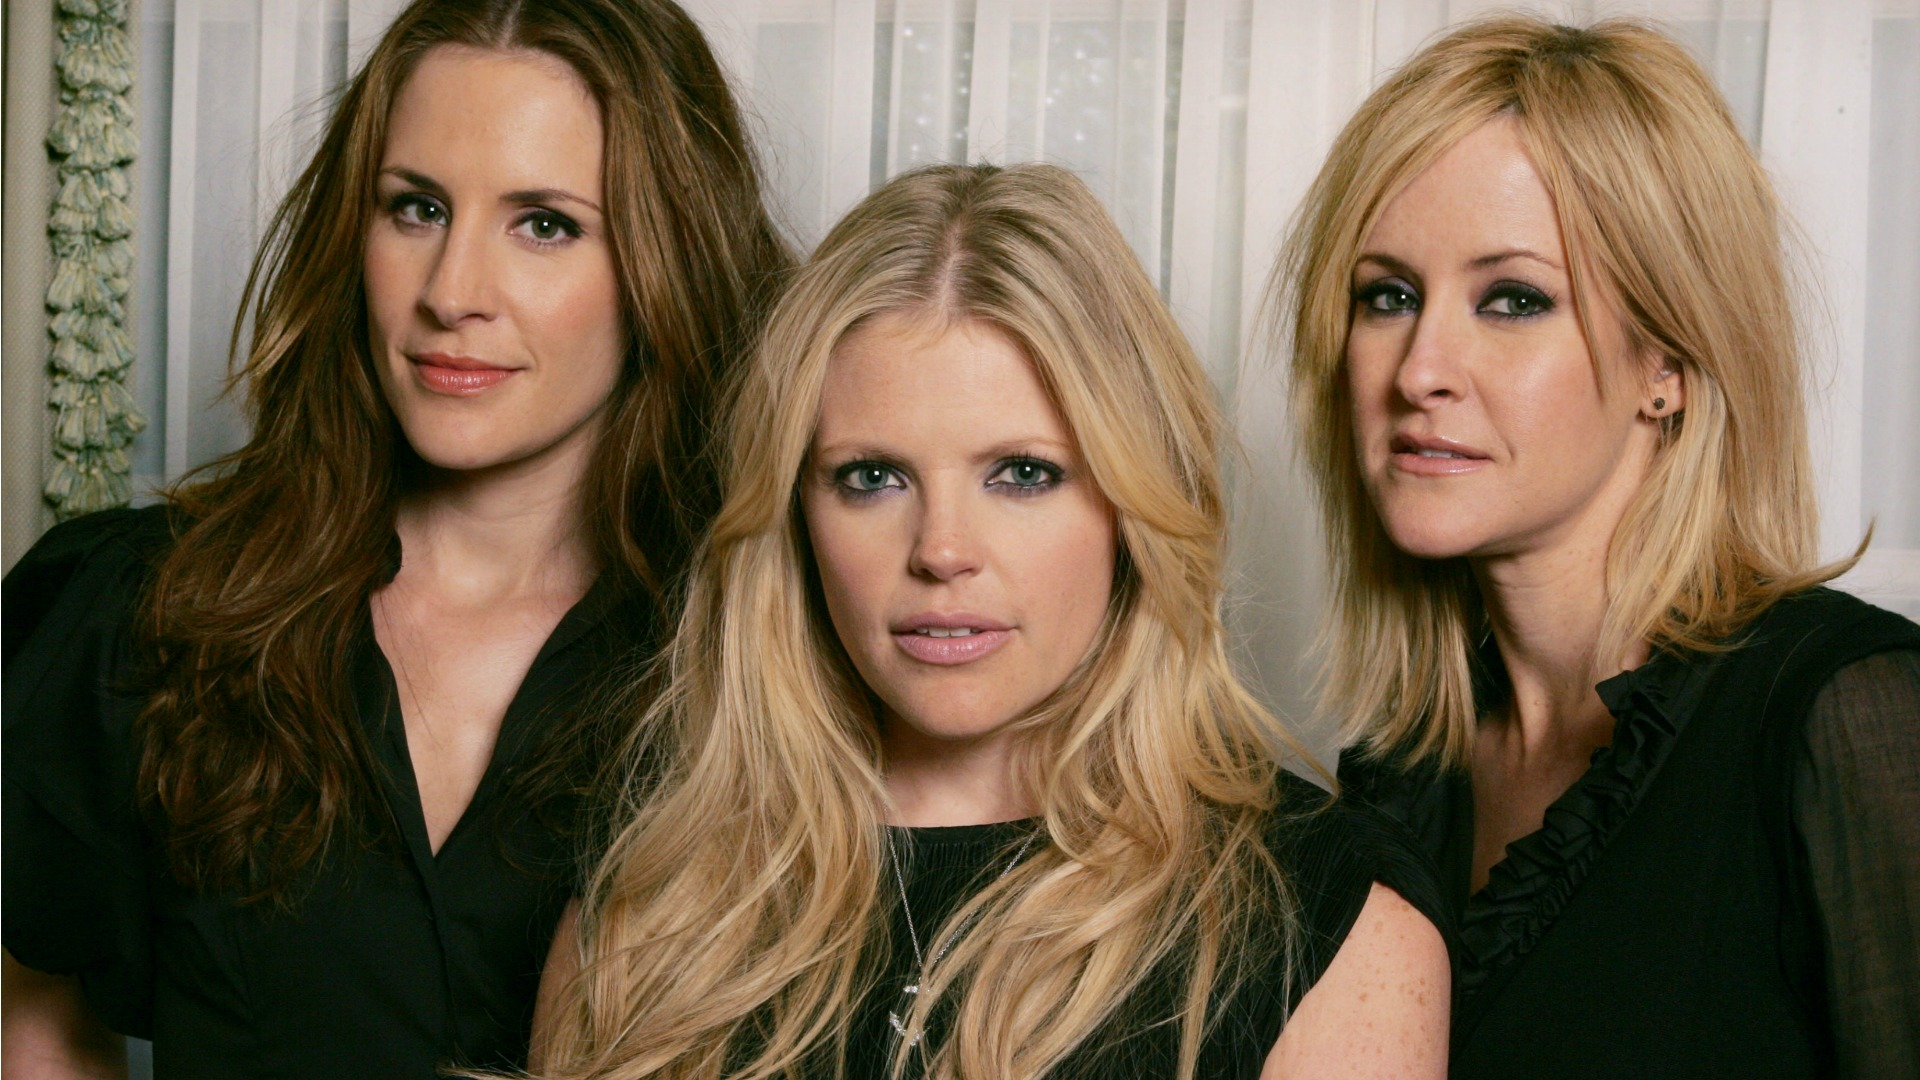 2. When Dixie Chicks won big and still weren't